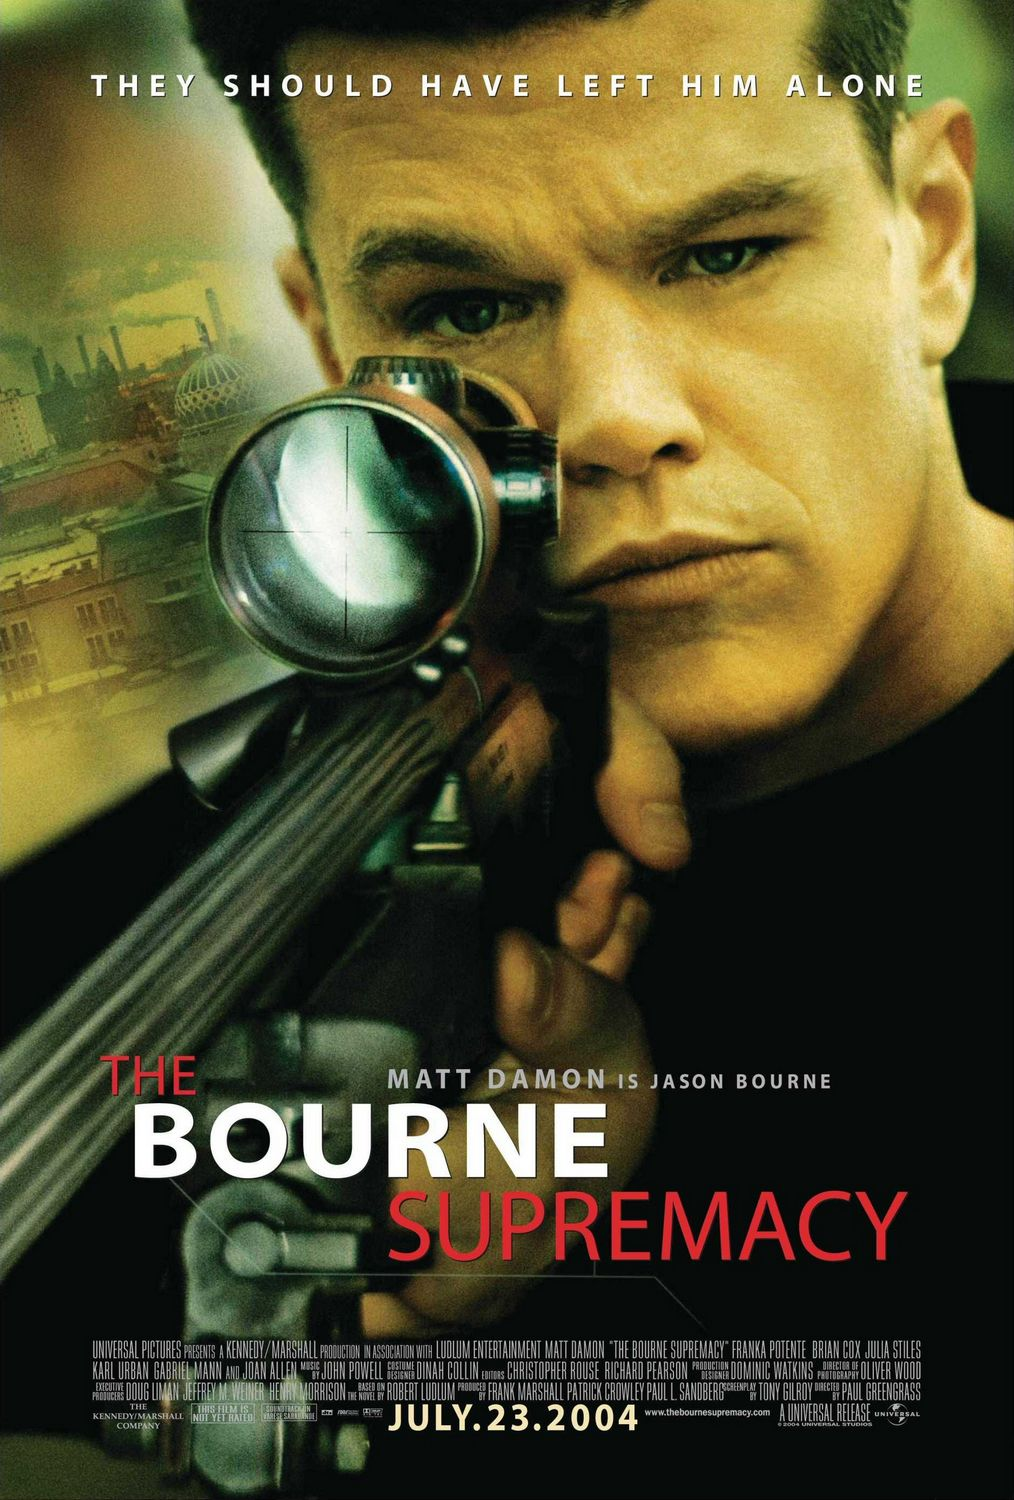 ba8d8d99b The Bourne Supremacy (2004) - IMDb